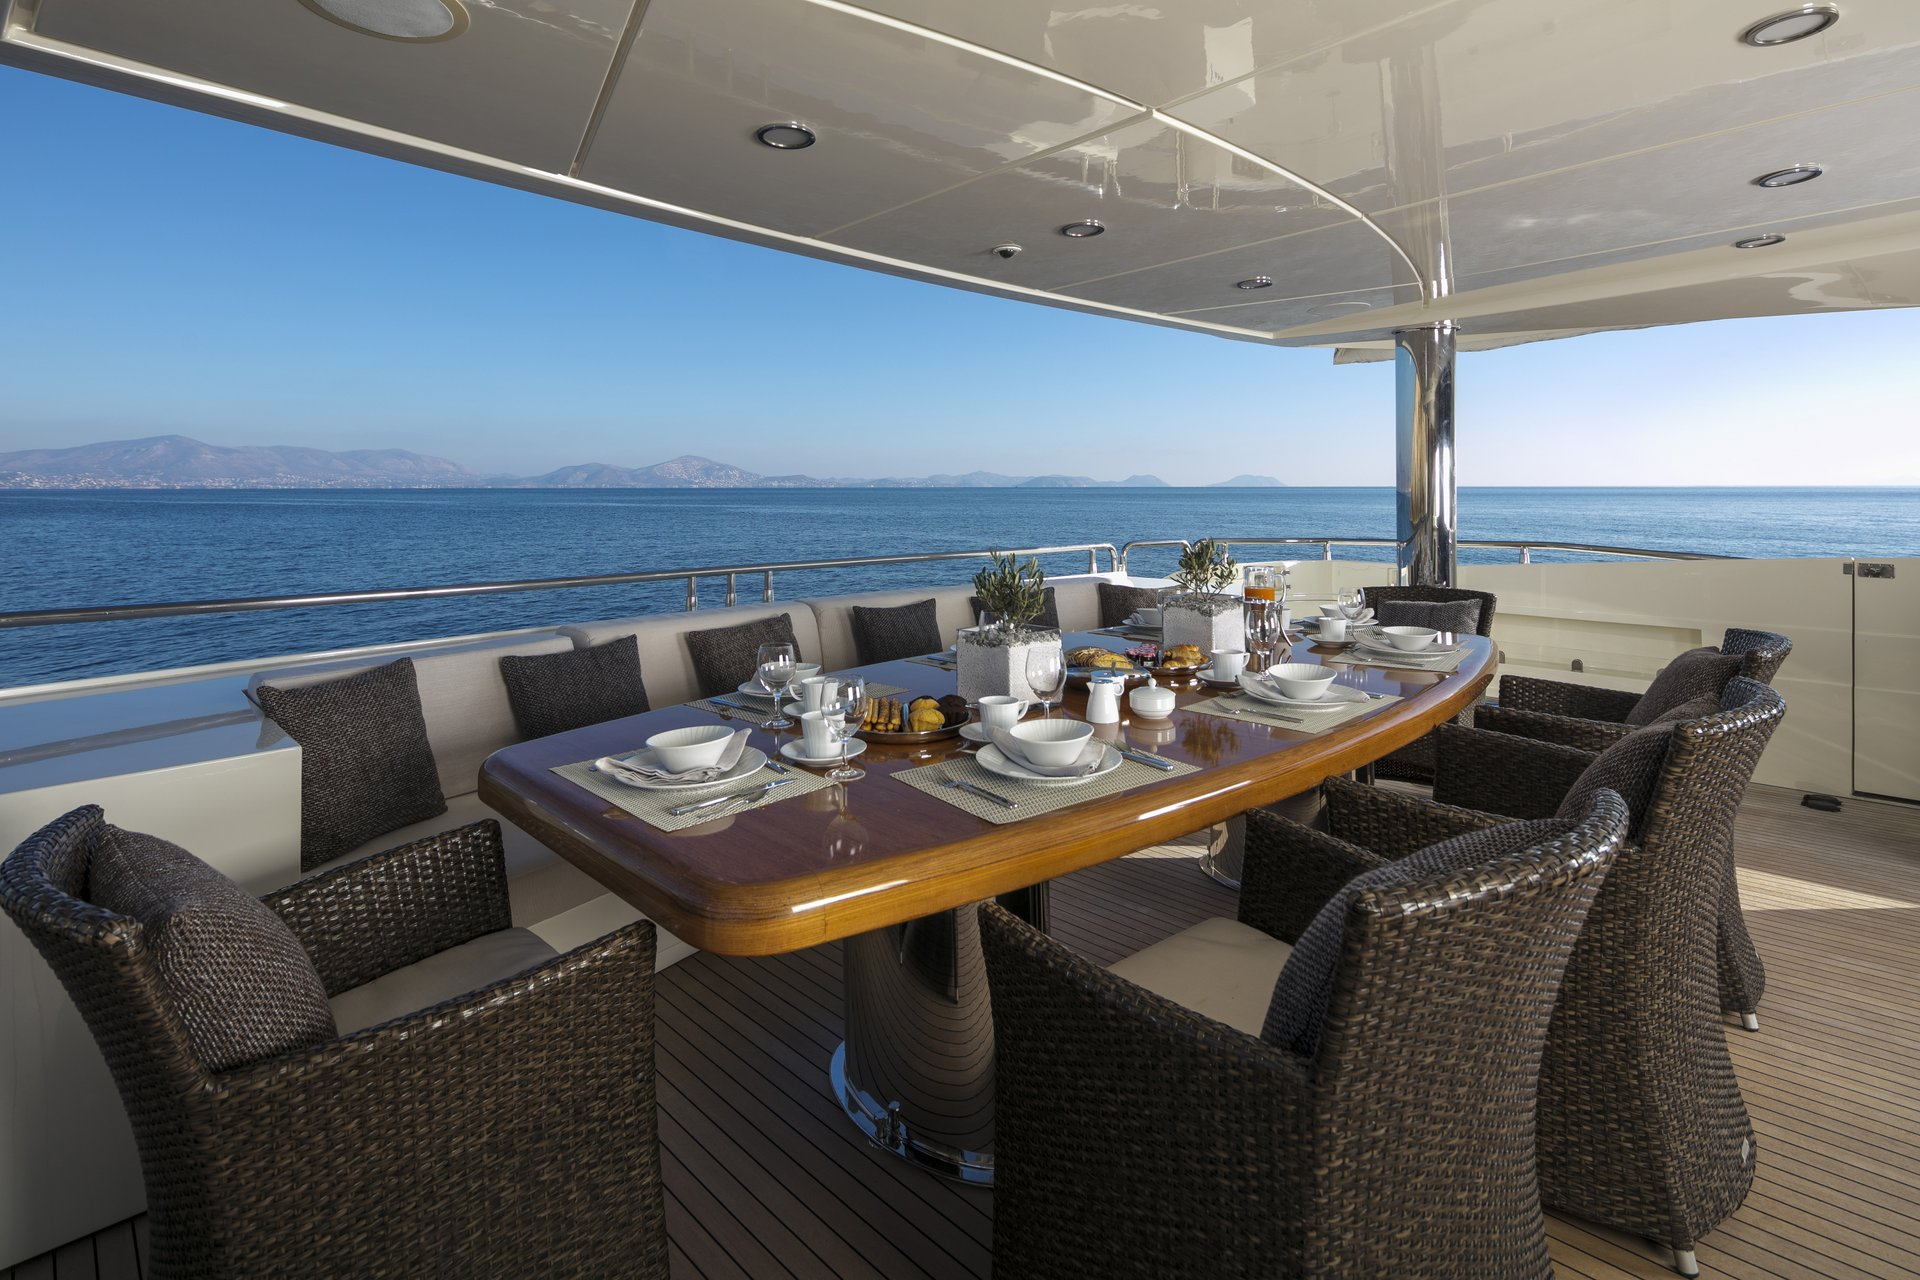 M/Y RINI V yacht for charter alfresco dining